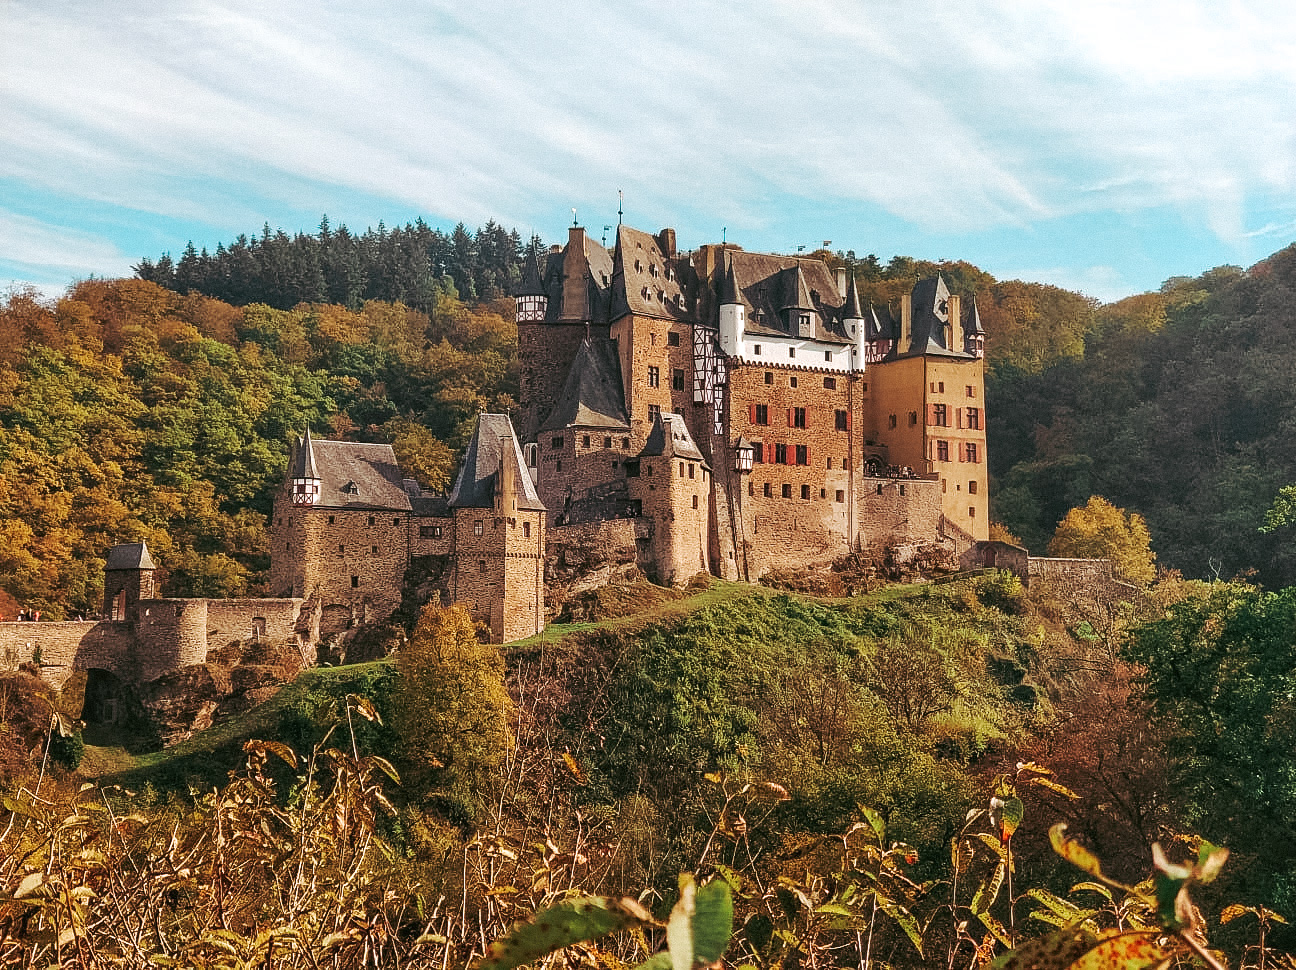 burg-eltz-castle-germany